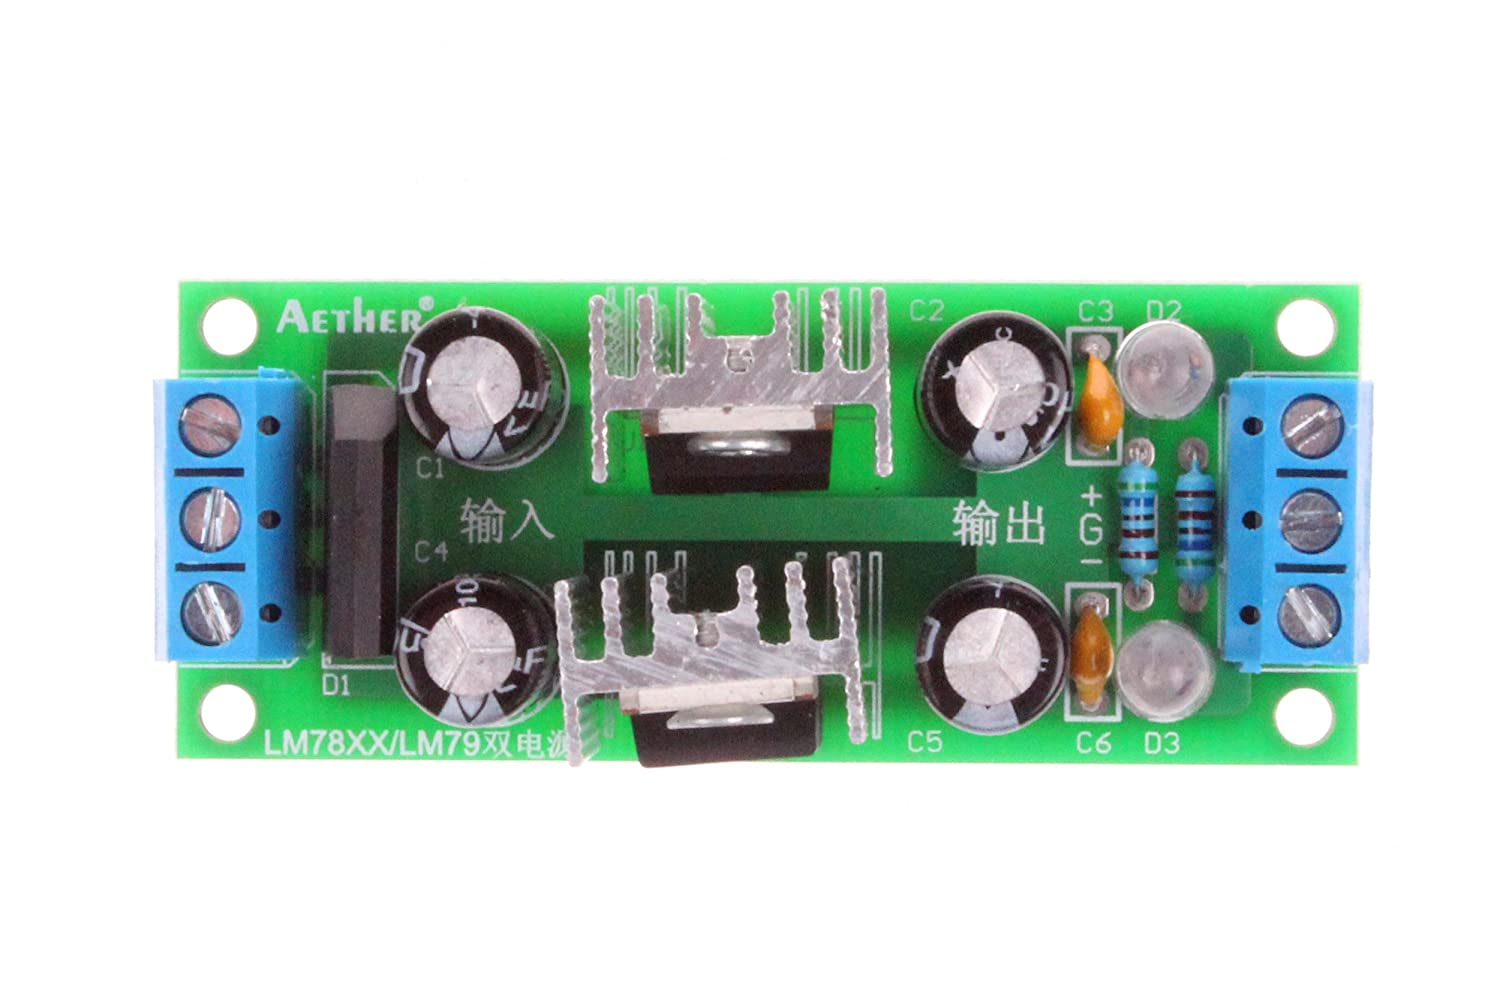 Lm7805 Lm7905 Three Terminal Regulator Power Supply Increase The Current Ic Module Dc8 15v Ac6 12v To 5v Dual Voltage With Rectifier Bridge